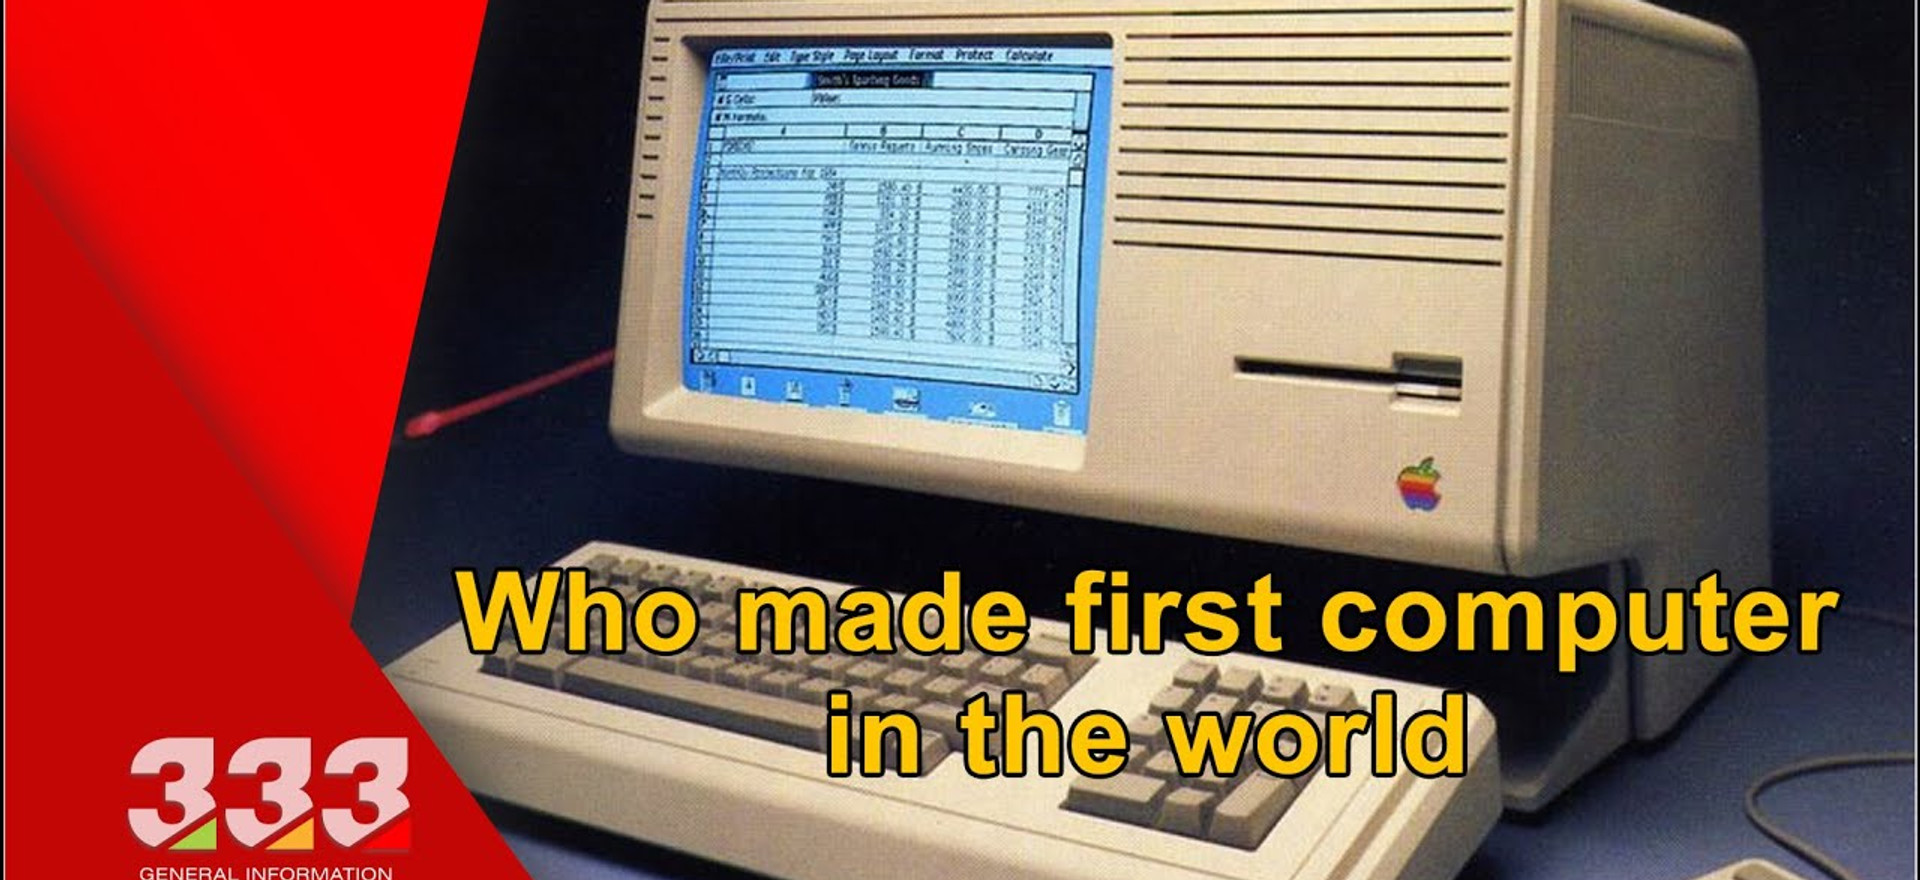 THE HISTORY OF THE COMPUTER